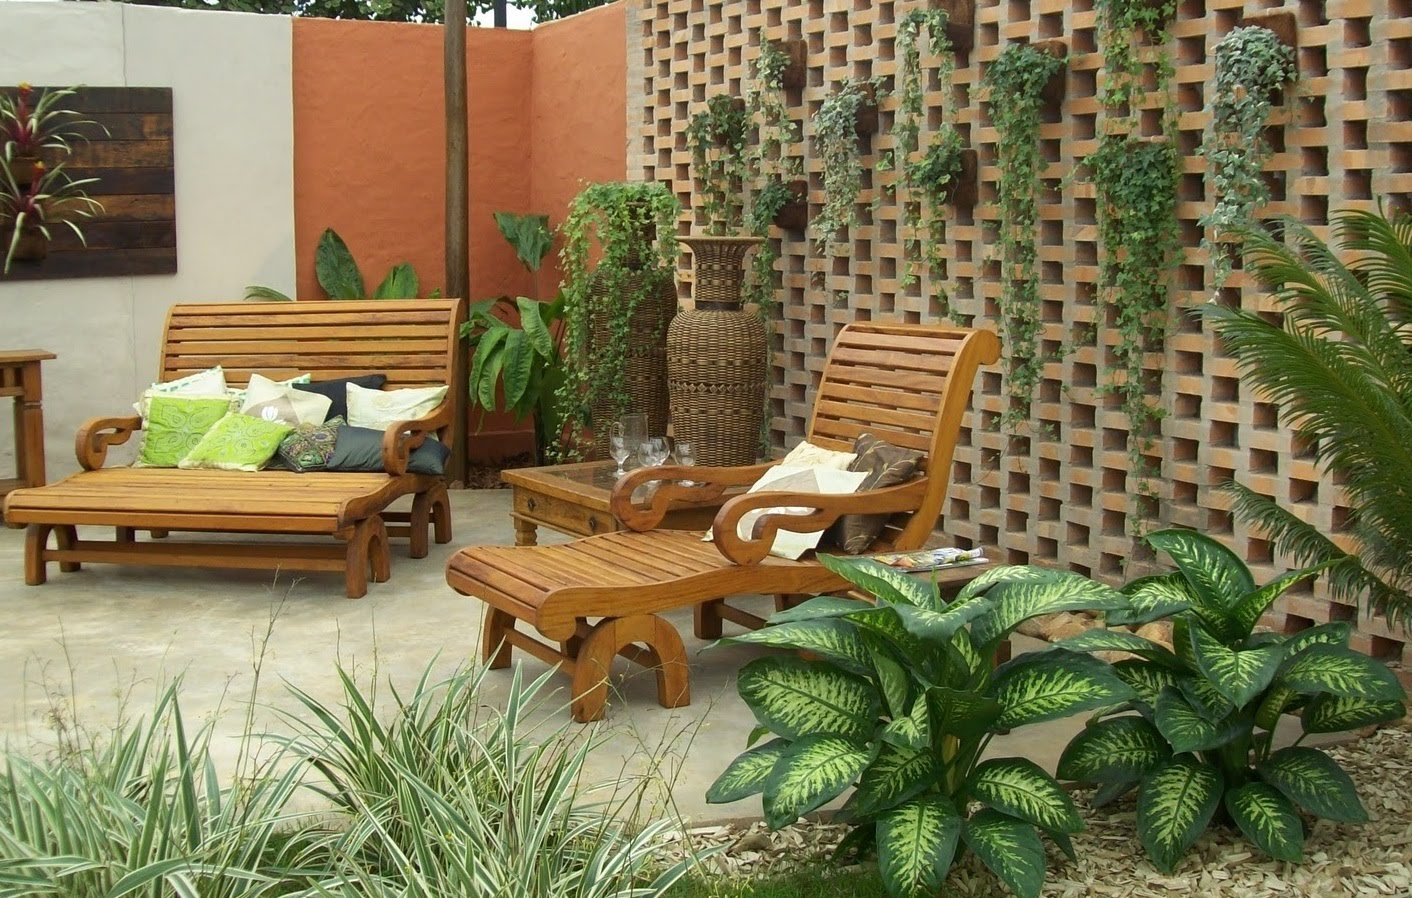 Jardines r sticos tendencia e ideas hoy lowcost for Ideas para decorar patios y jardines